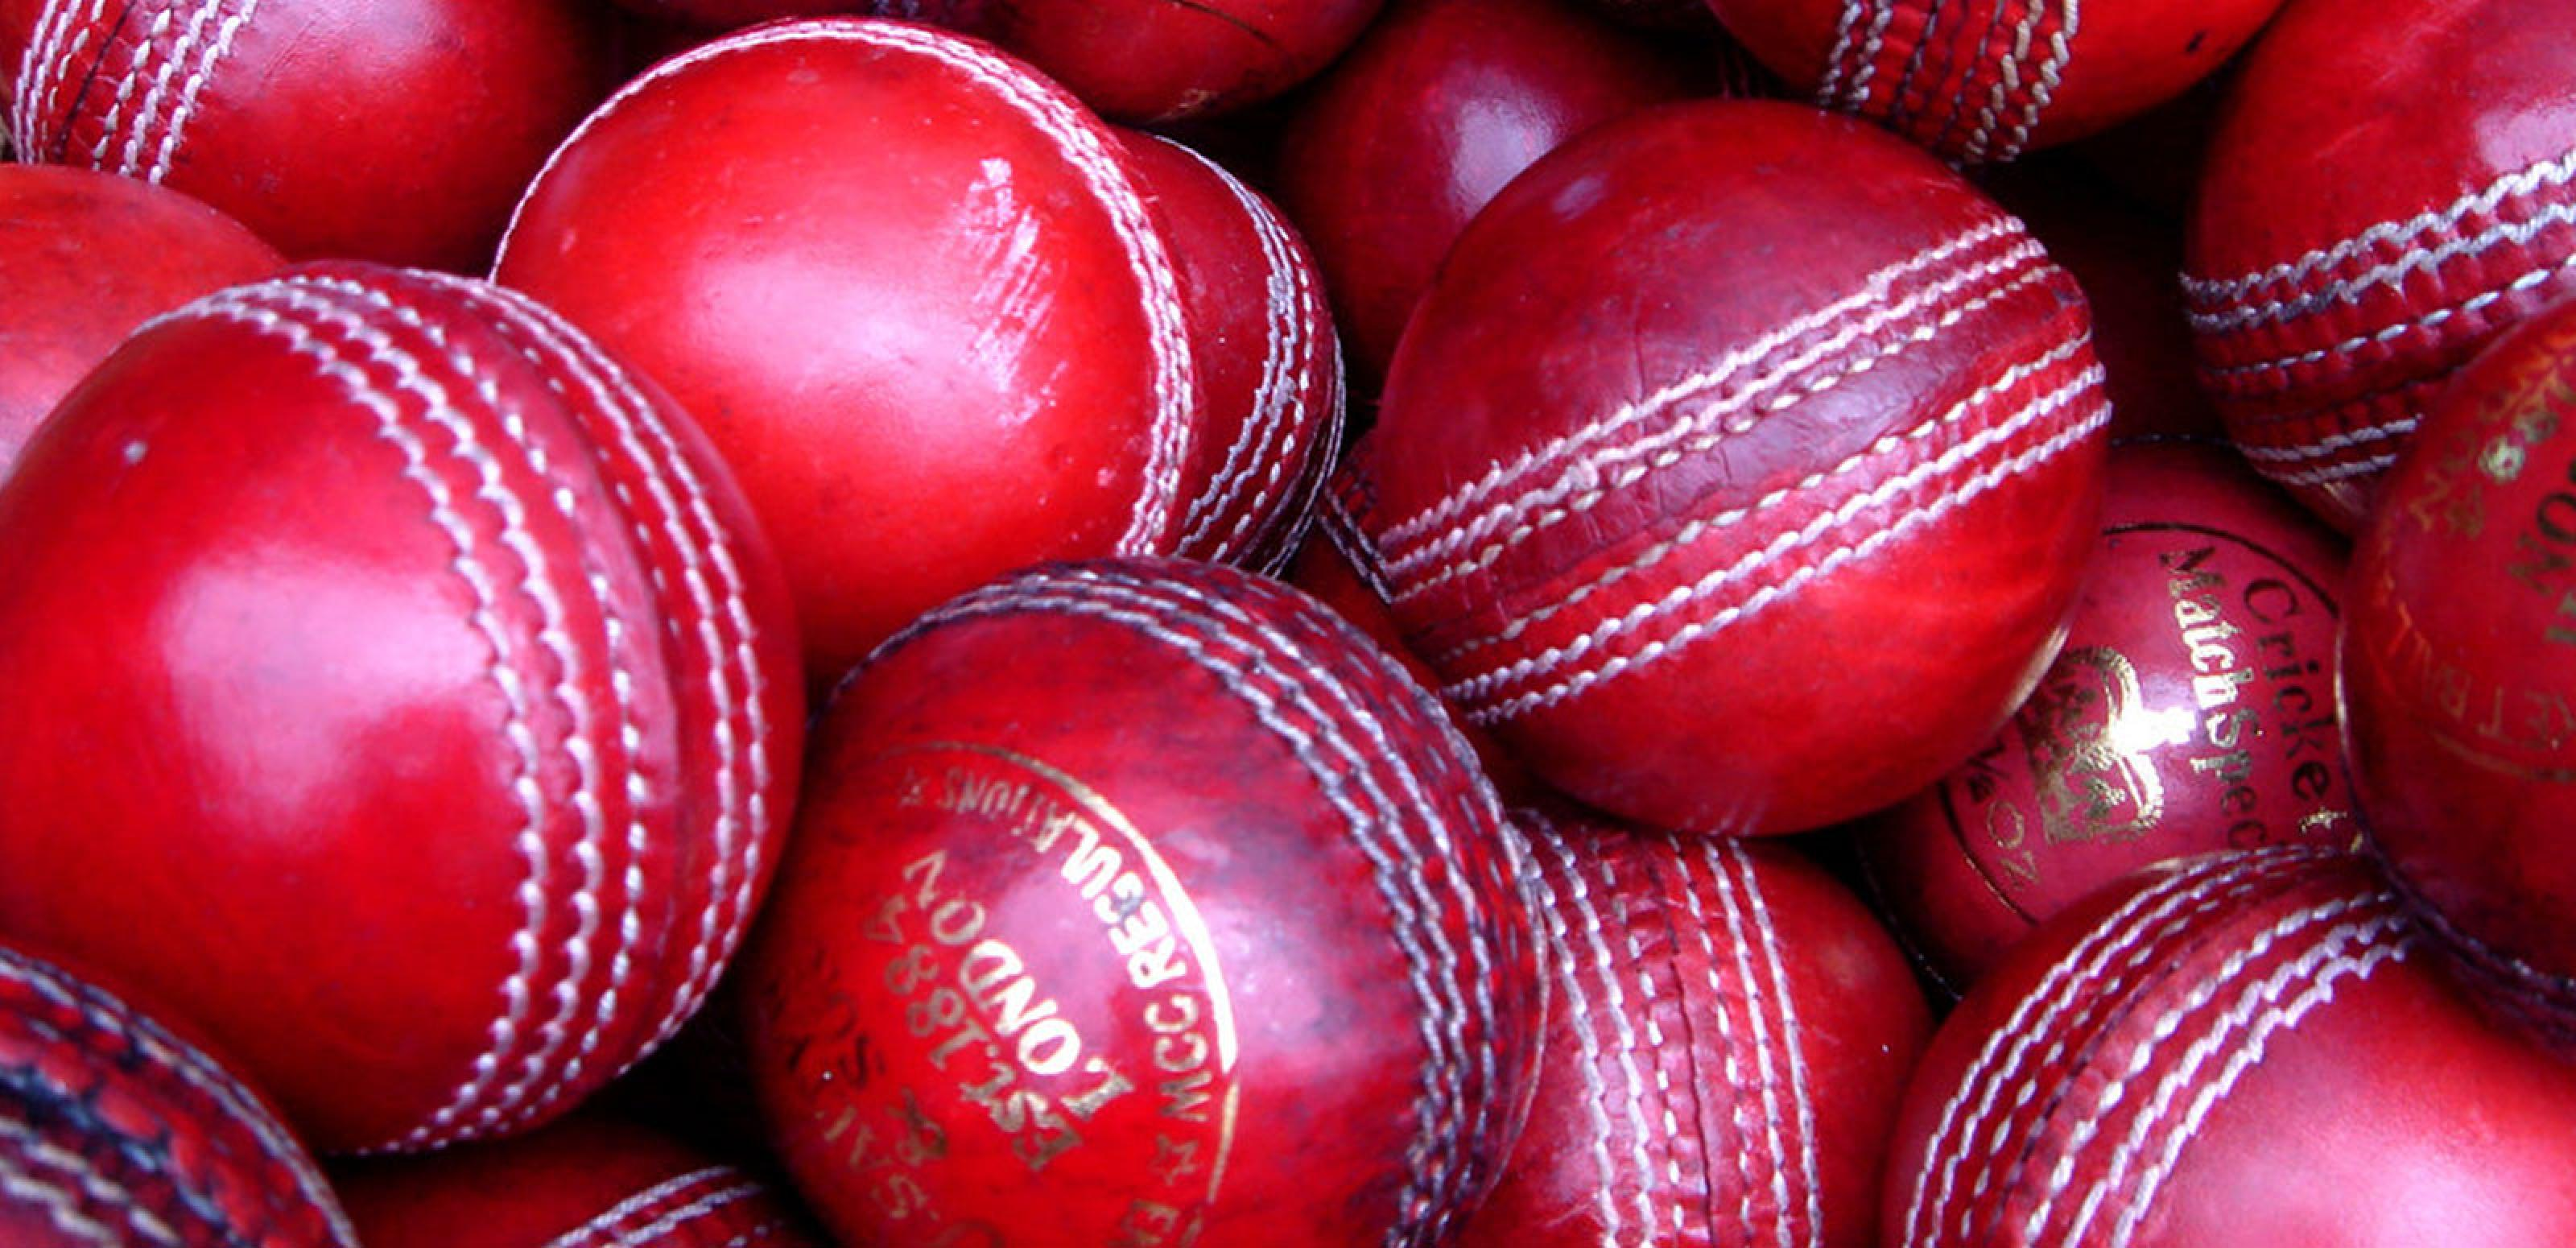 A close up of a collection of new and used red cricket balls inside a basket.